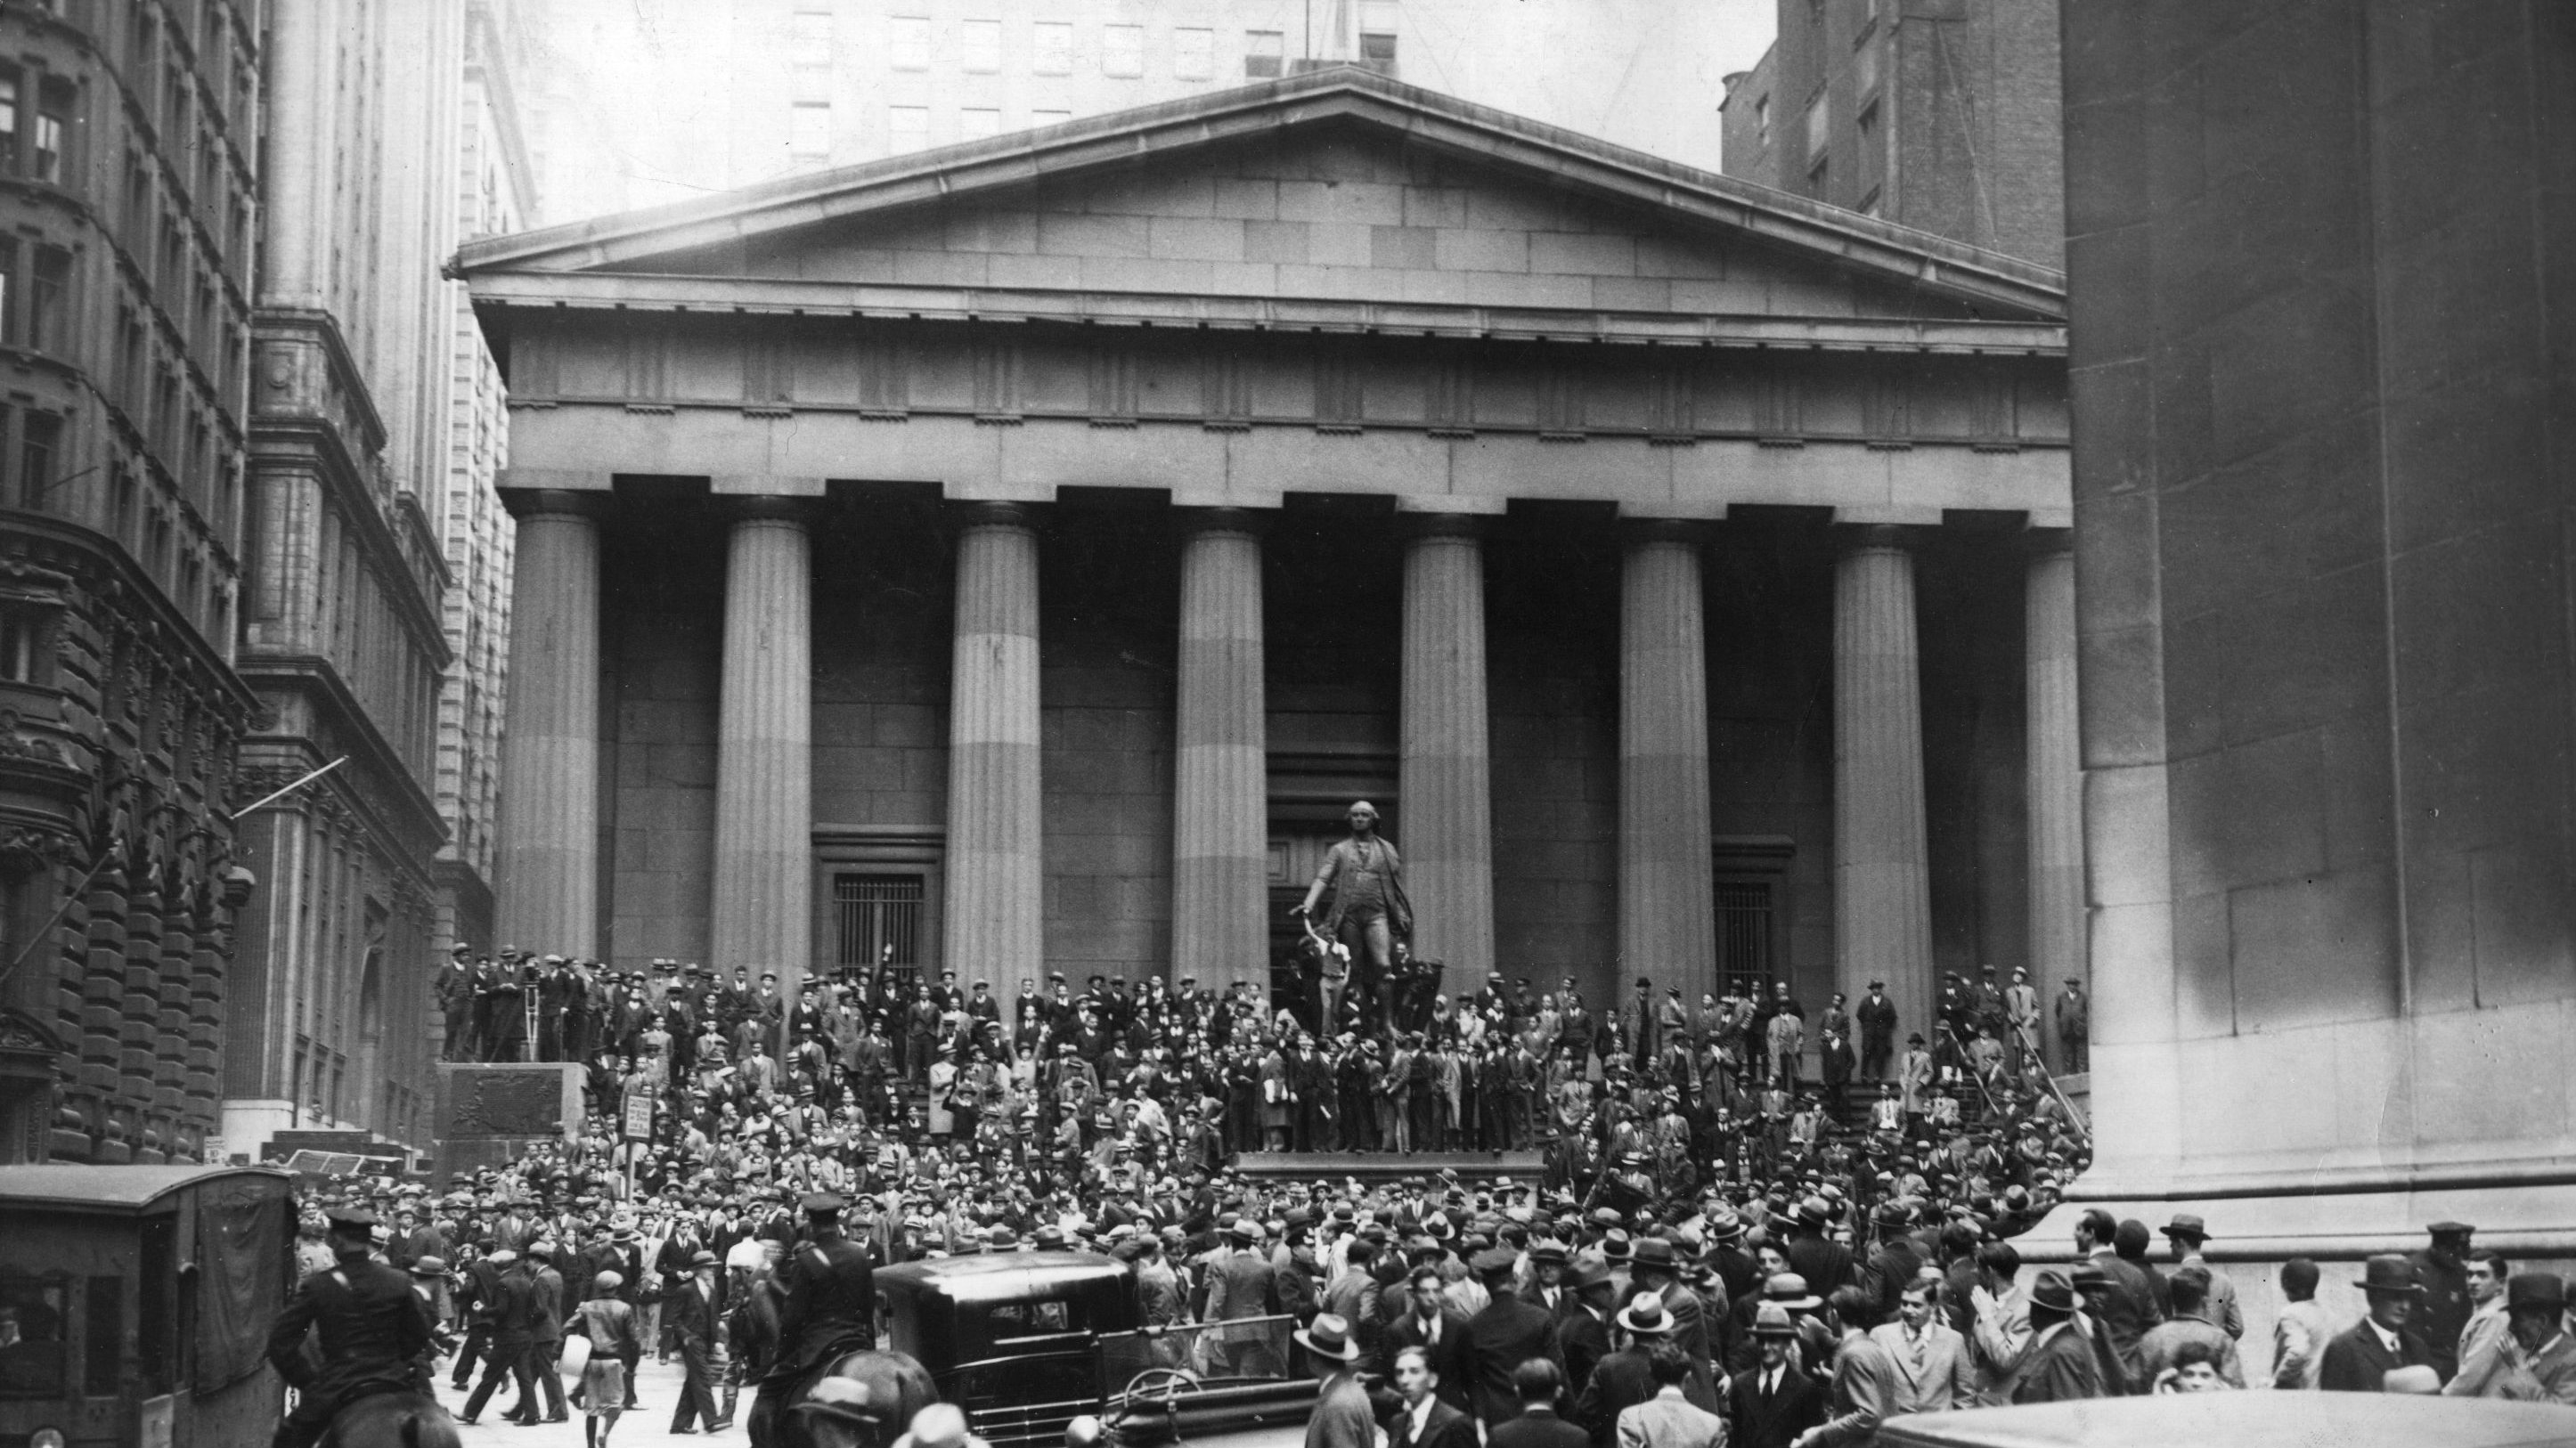 For much of American history (the period 1790-1970), Wall Street's capital funded business investment in the real economy (Photo from Hulton Archive/Getty Images, 1929)